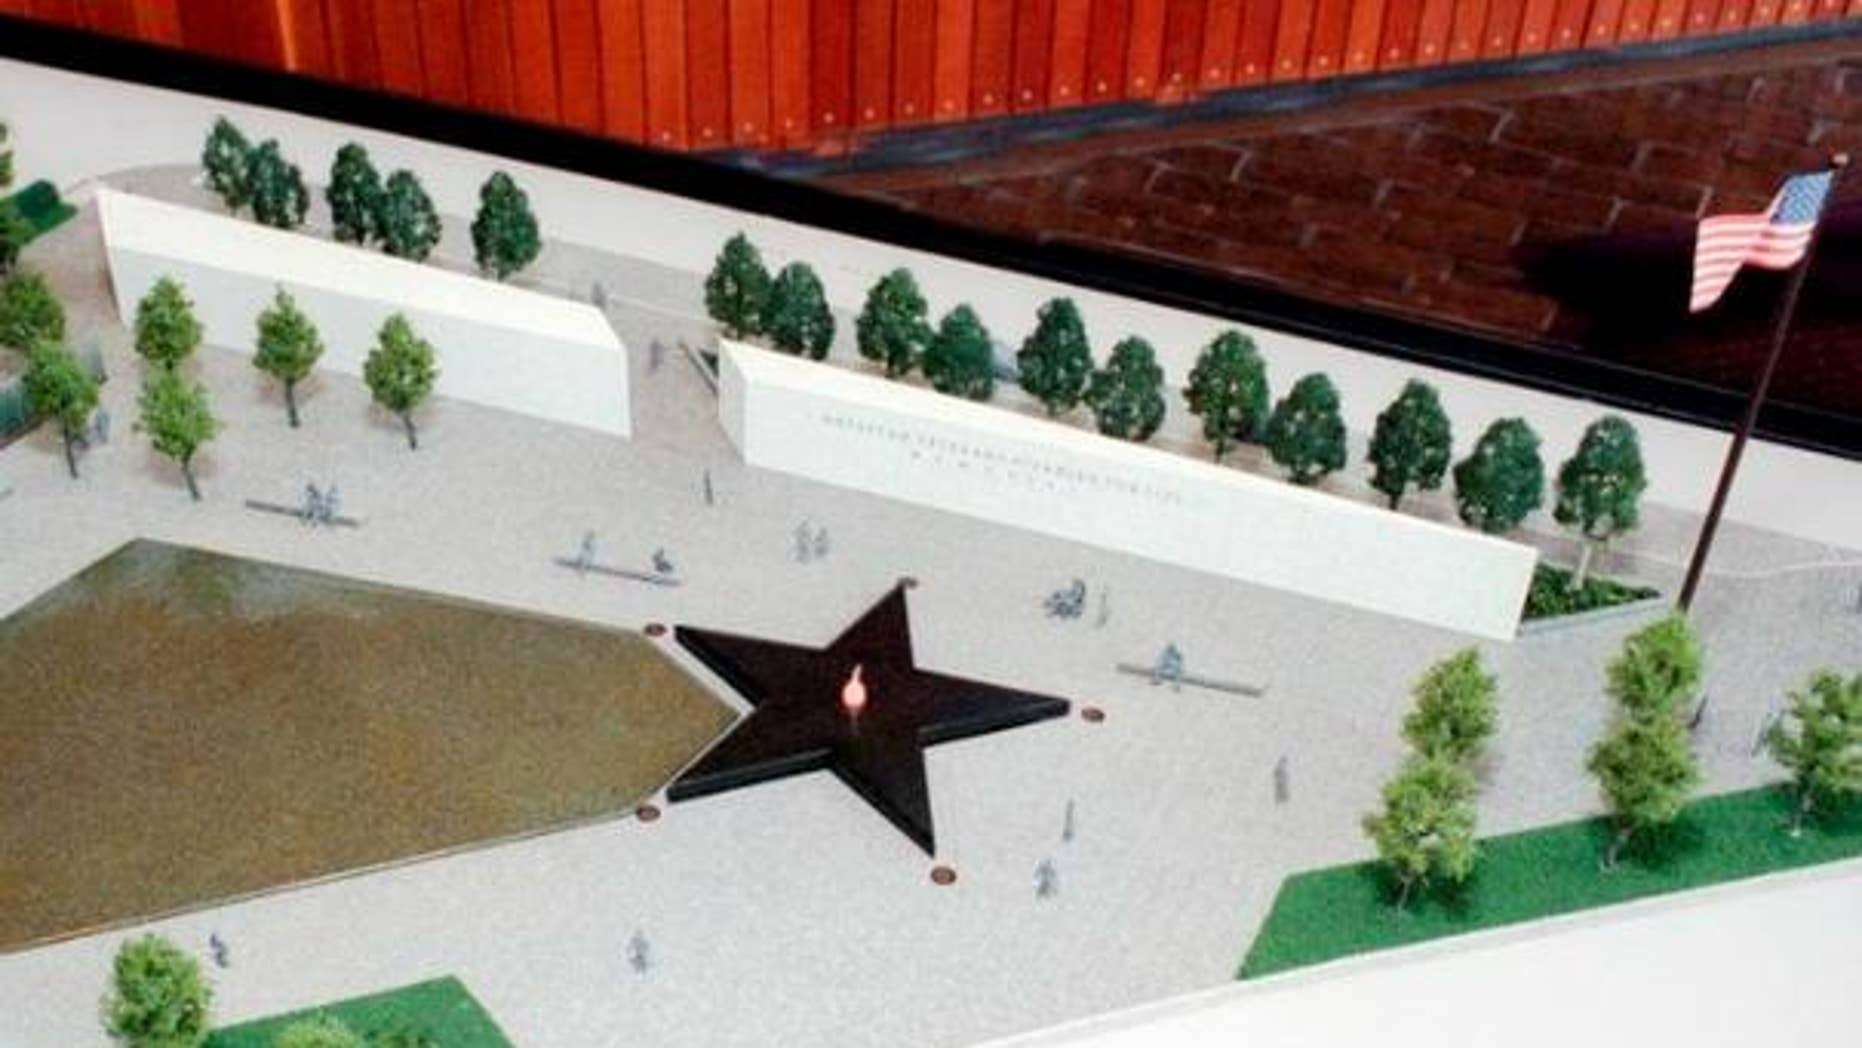 A rendering of the proposed memorial